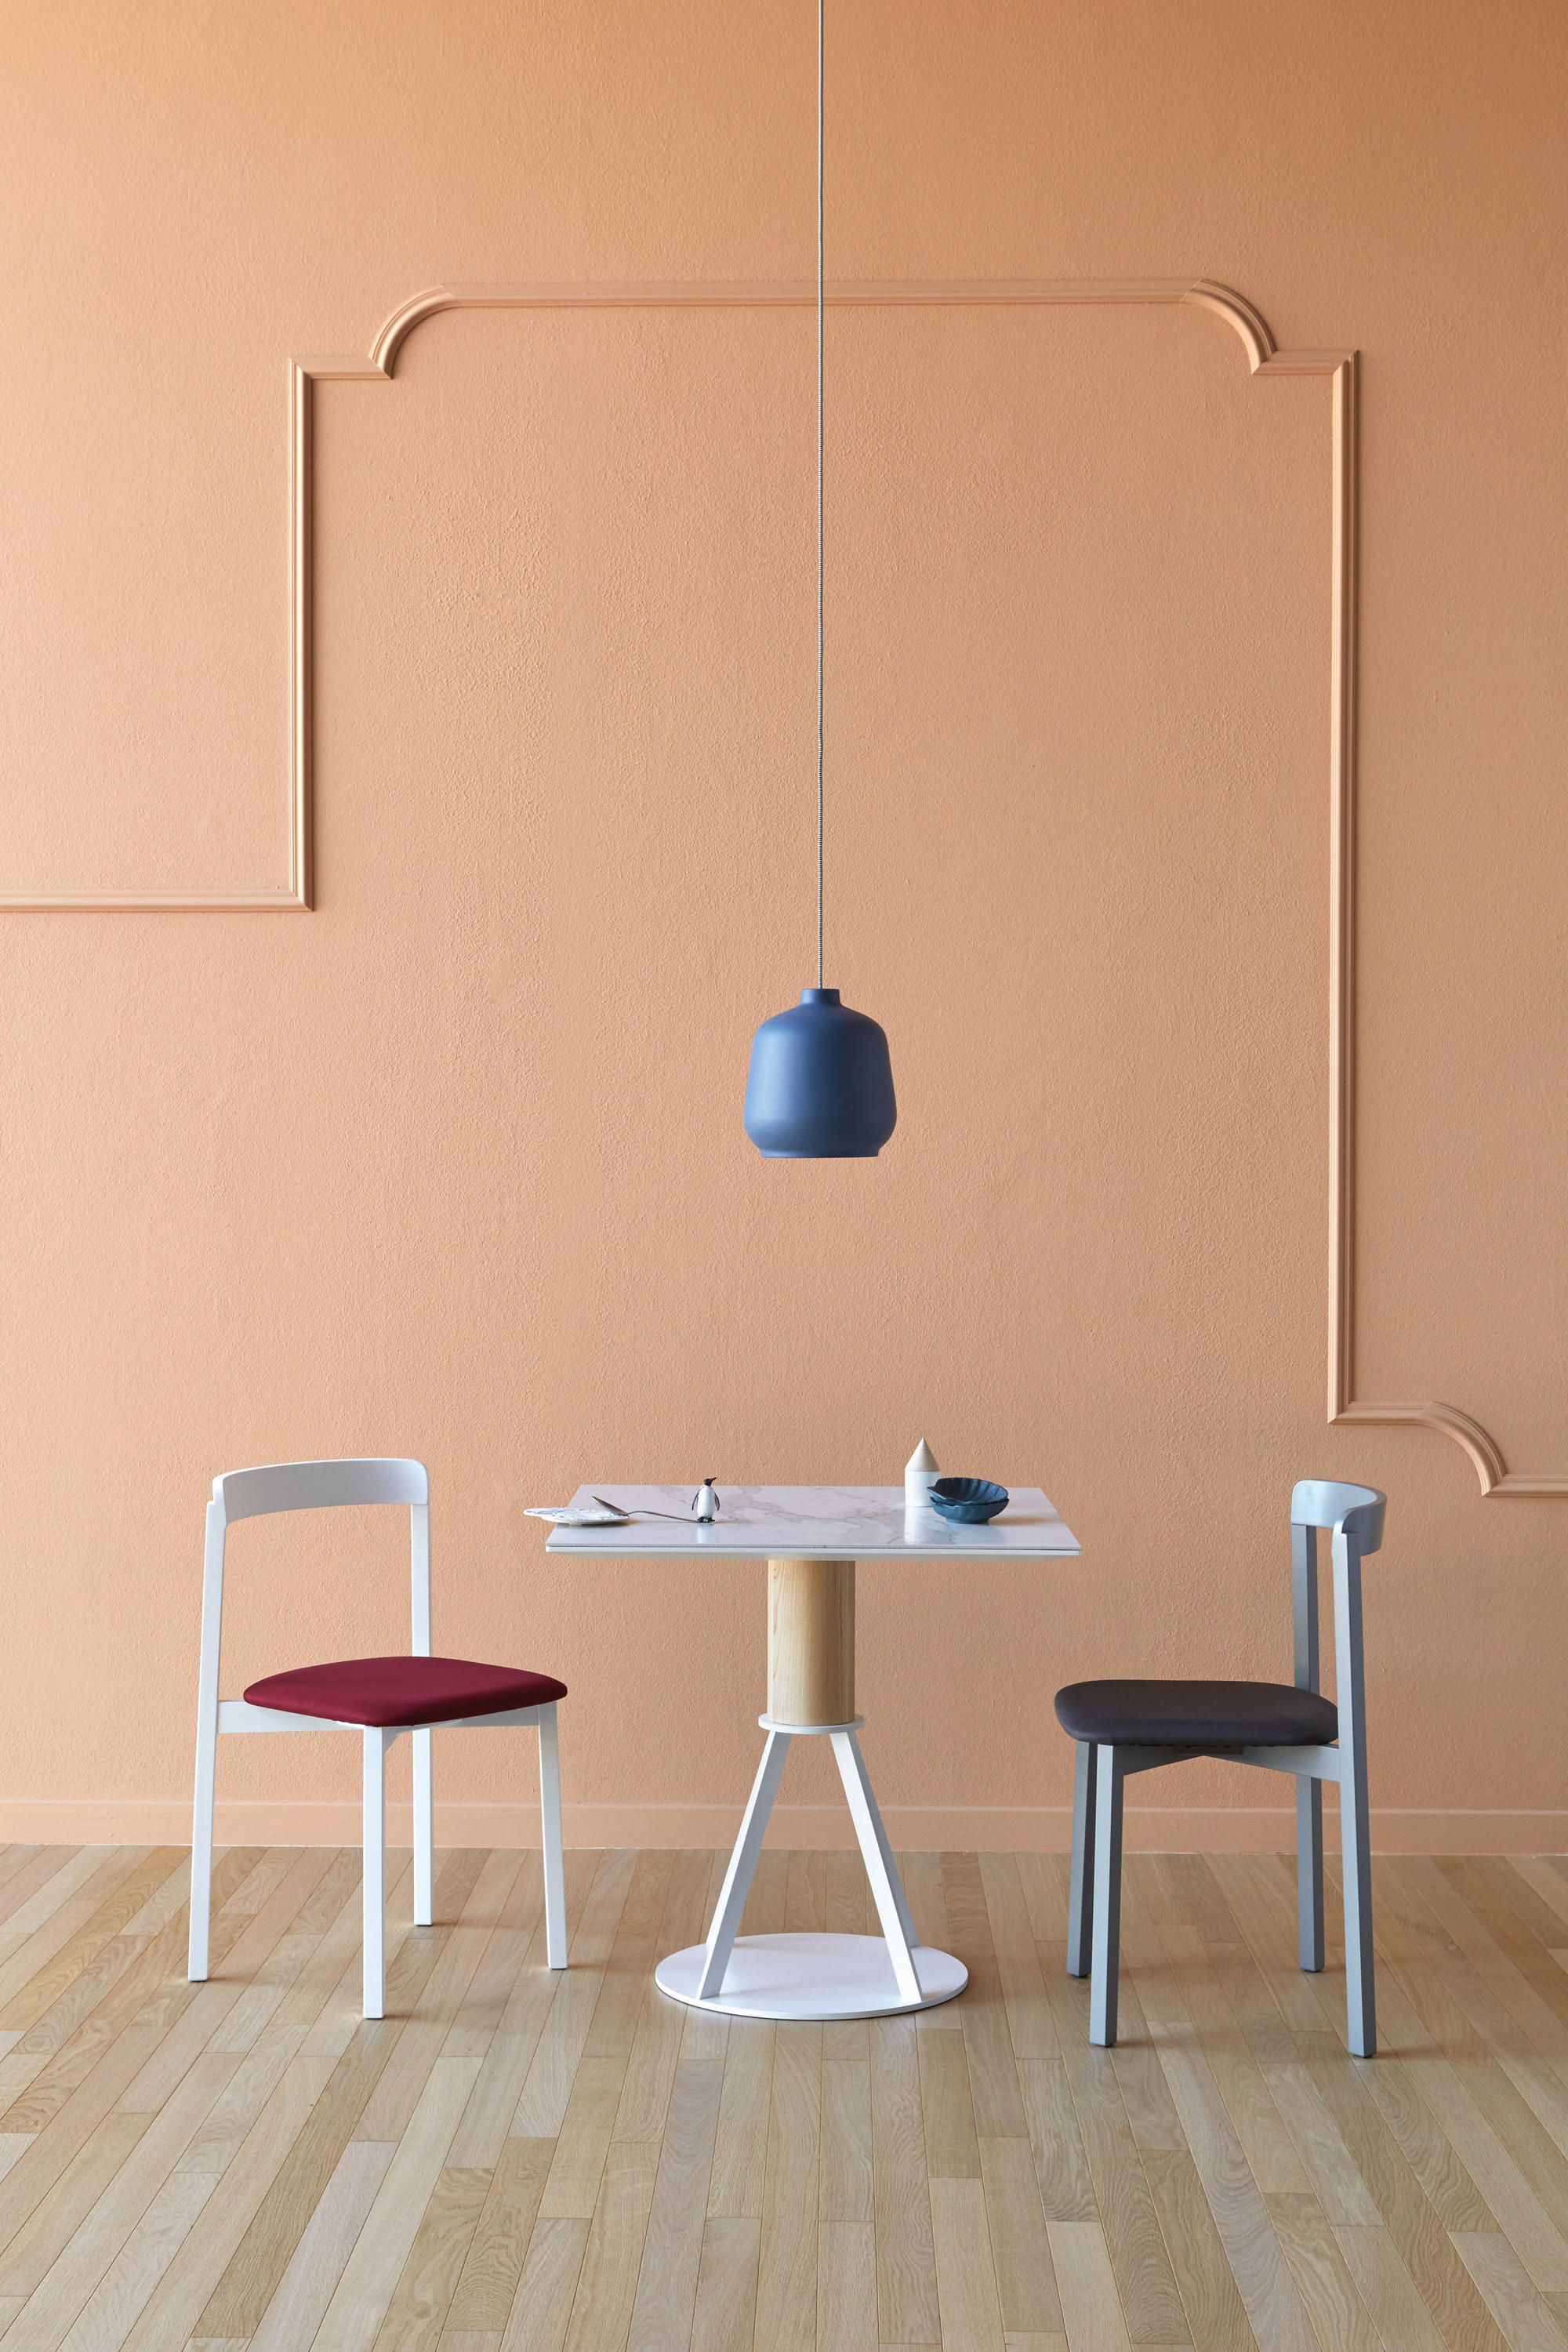 Marvelous Geronimo By Miniforms | Dining Tables Geronimo By Miniforms | Dining Tables